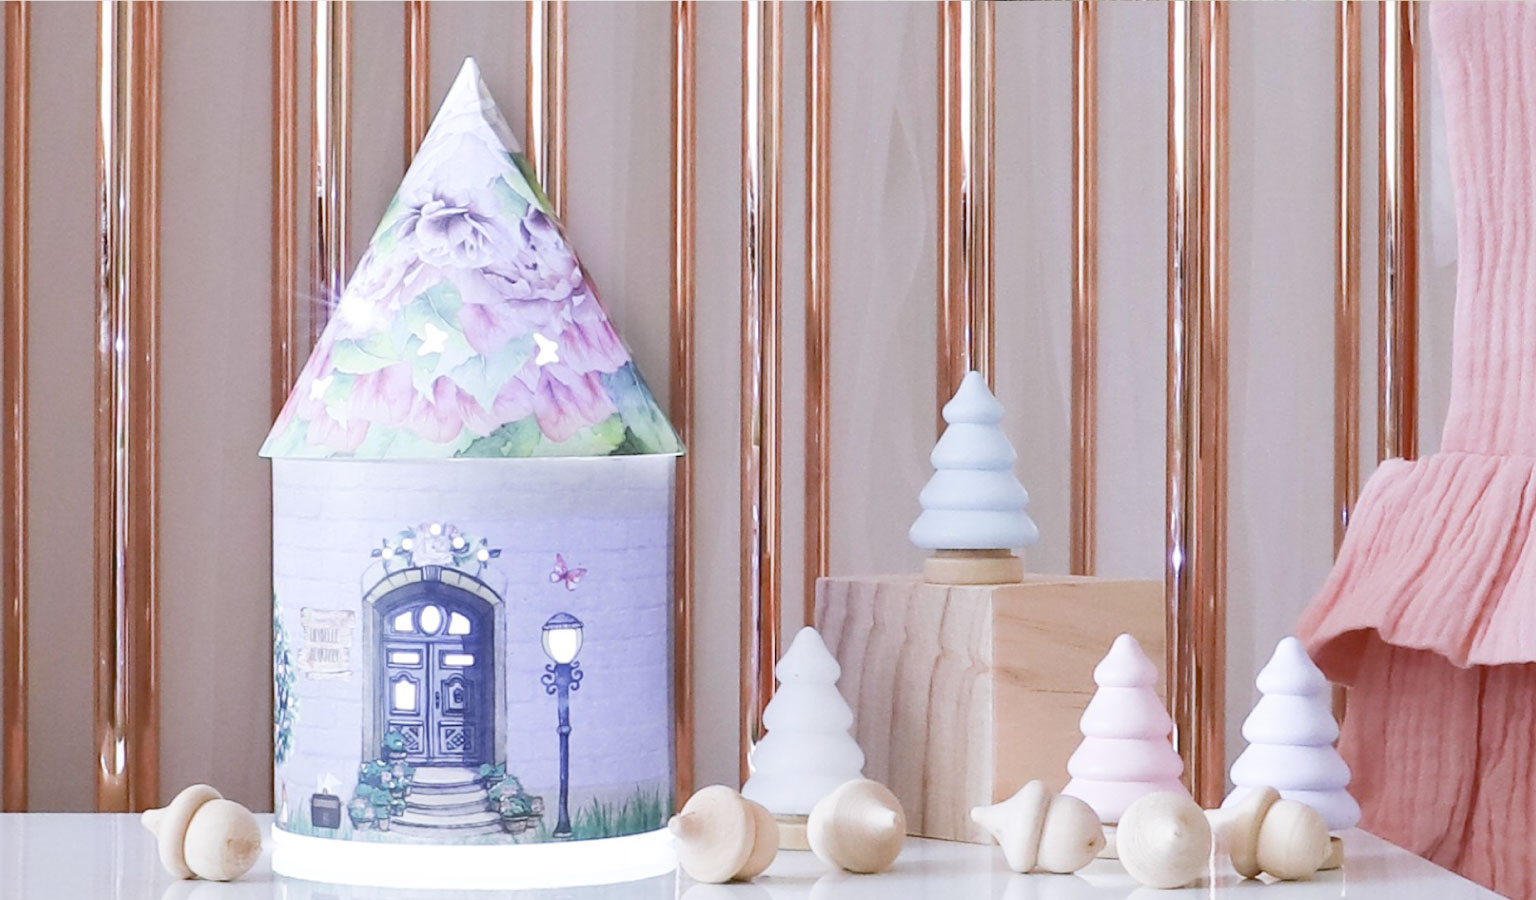 Gifts and décor for your tiny tot or nursery